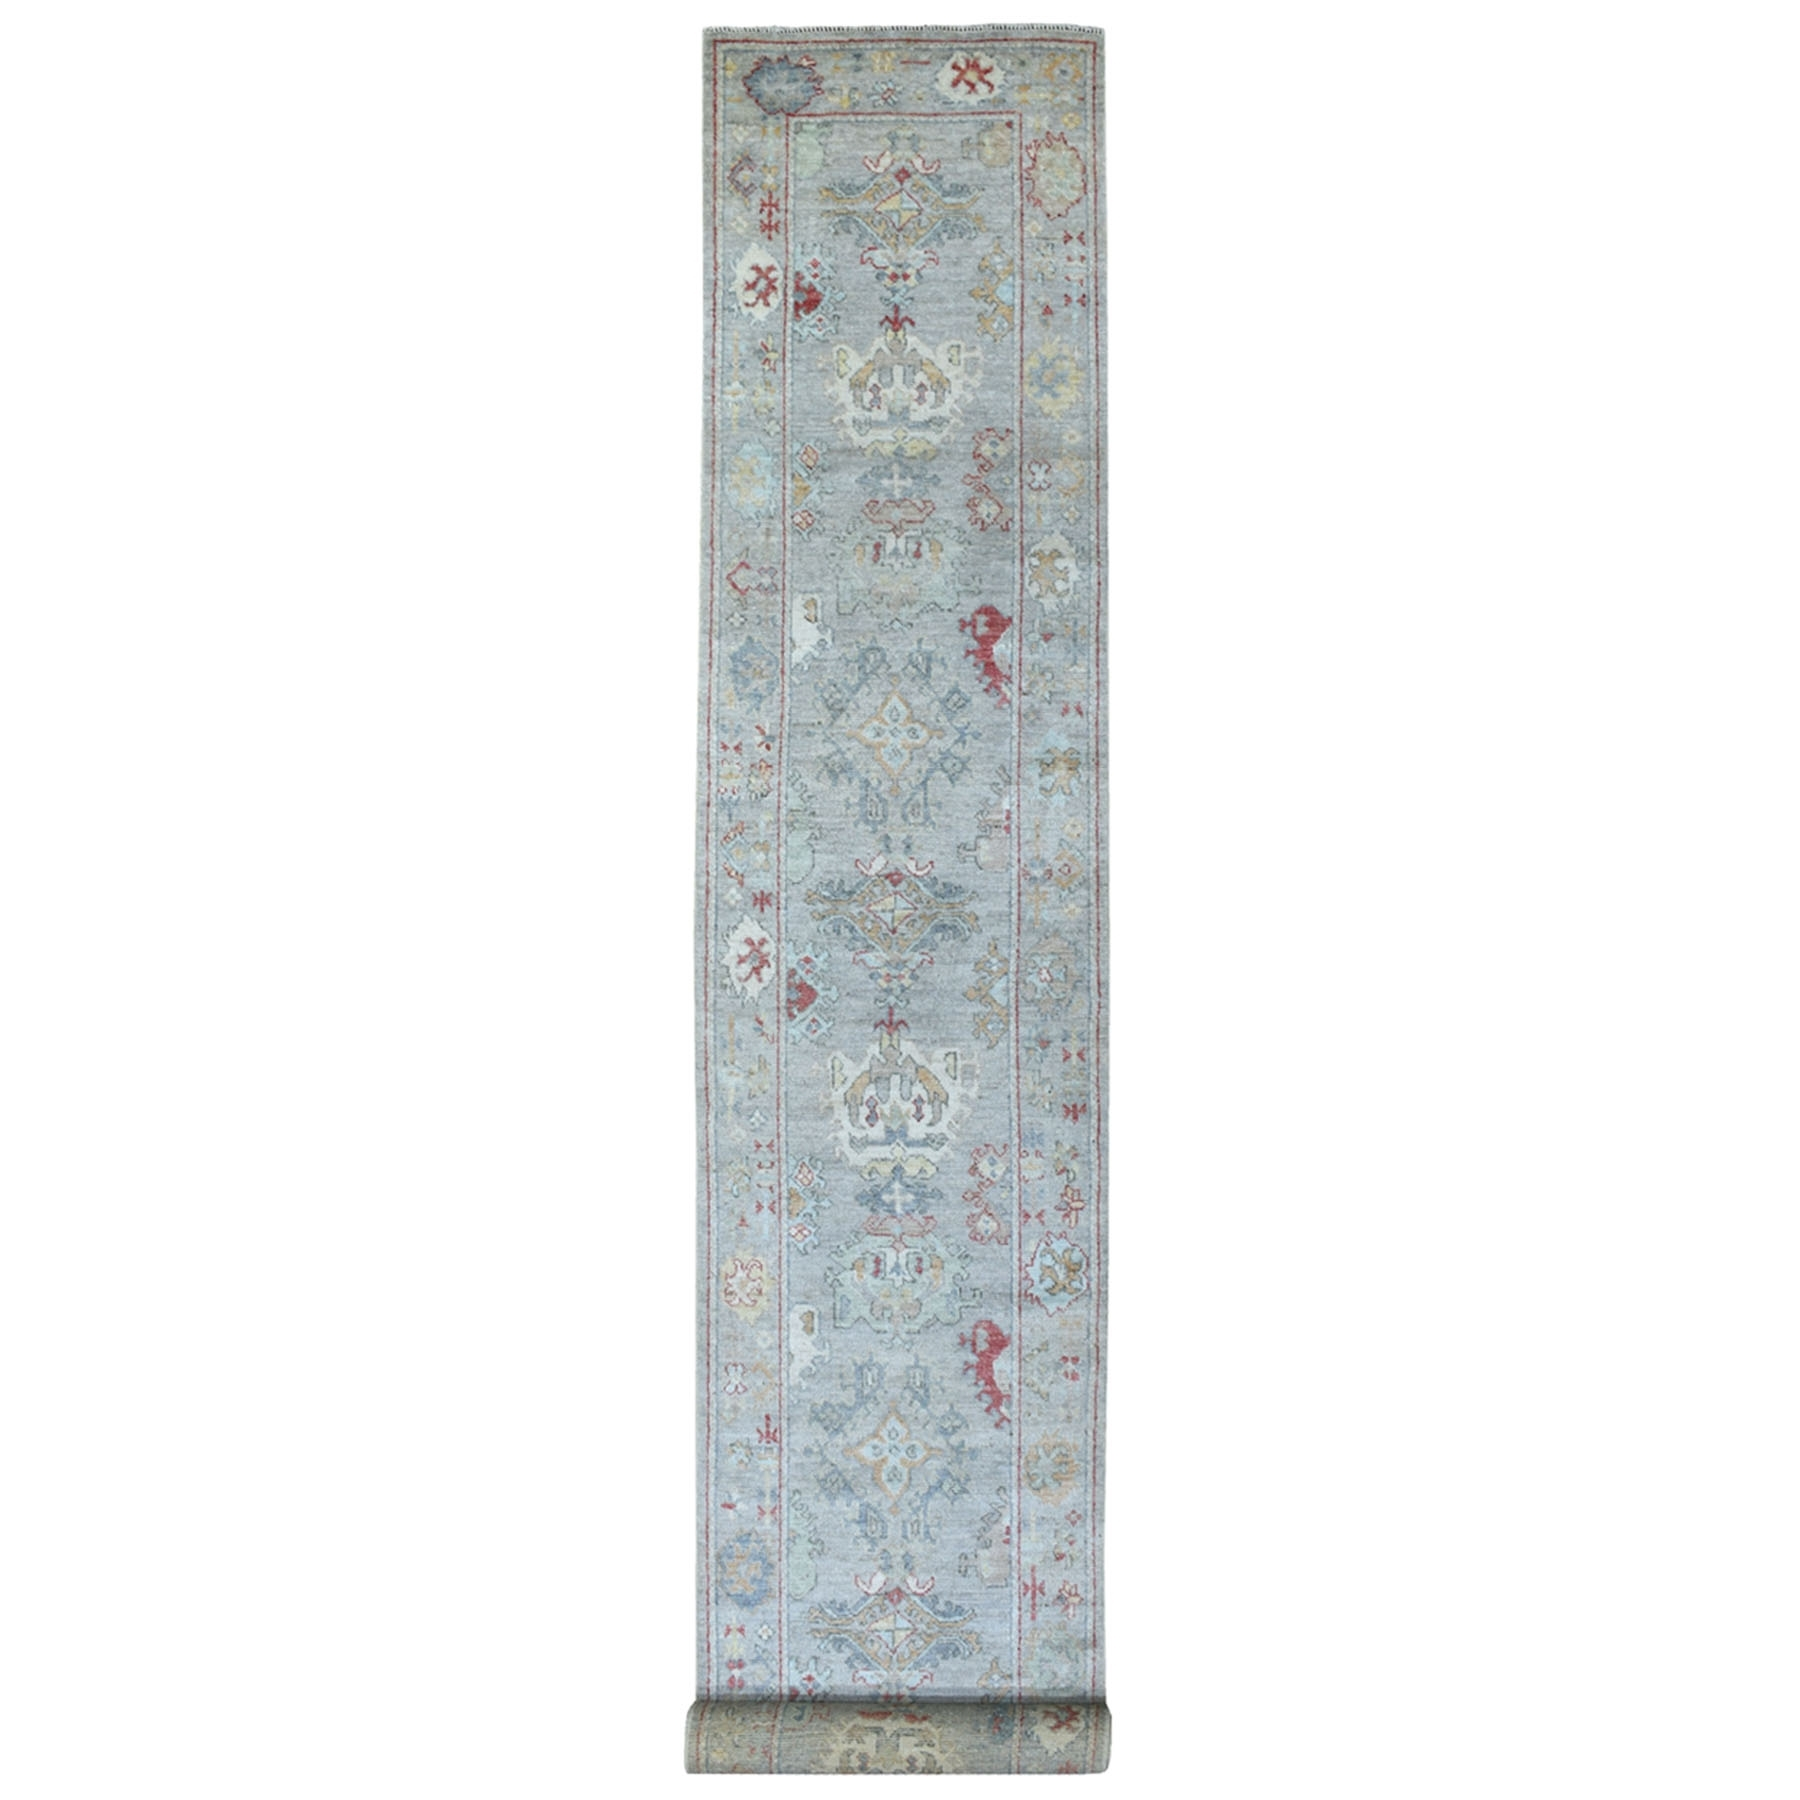 "2'10""x19'8"" Hand Woven Angora Oushak Silver Blue Soft Vibrant Wool With Soft Colors Oriental XL Runner Rug"